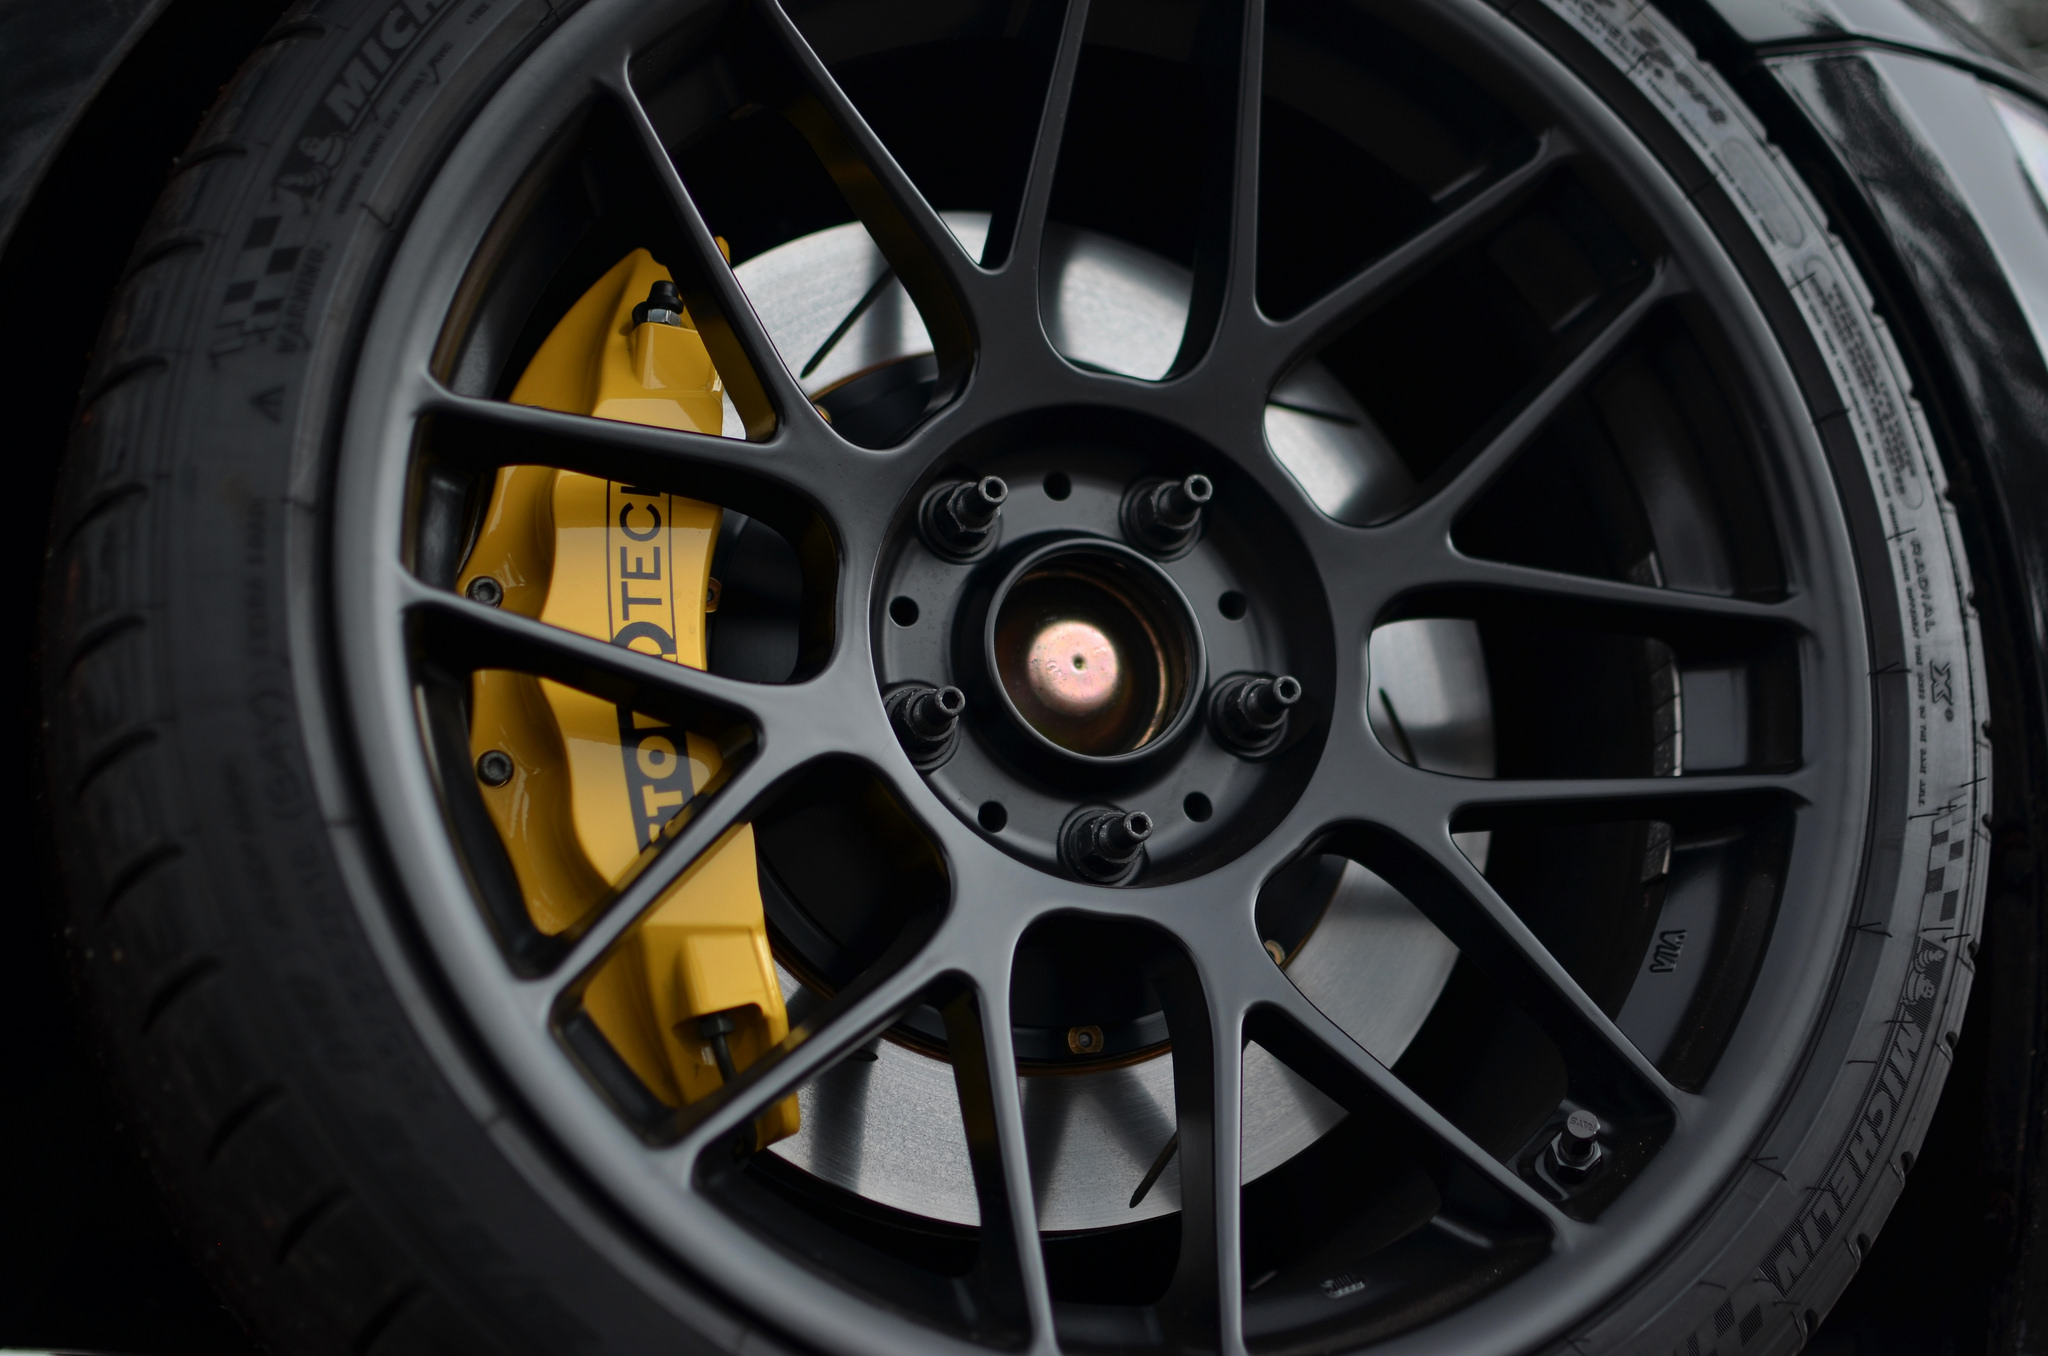 wheel-spacers-good-or-bad